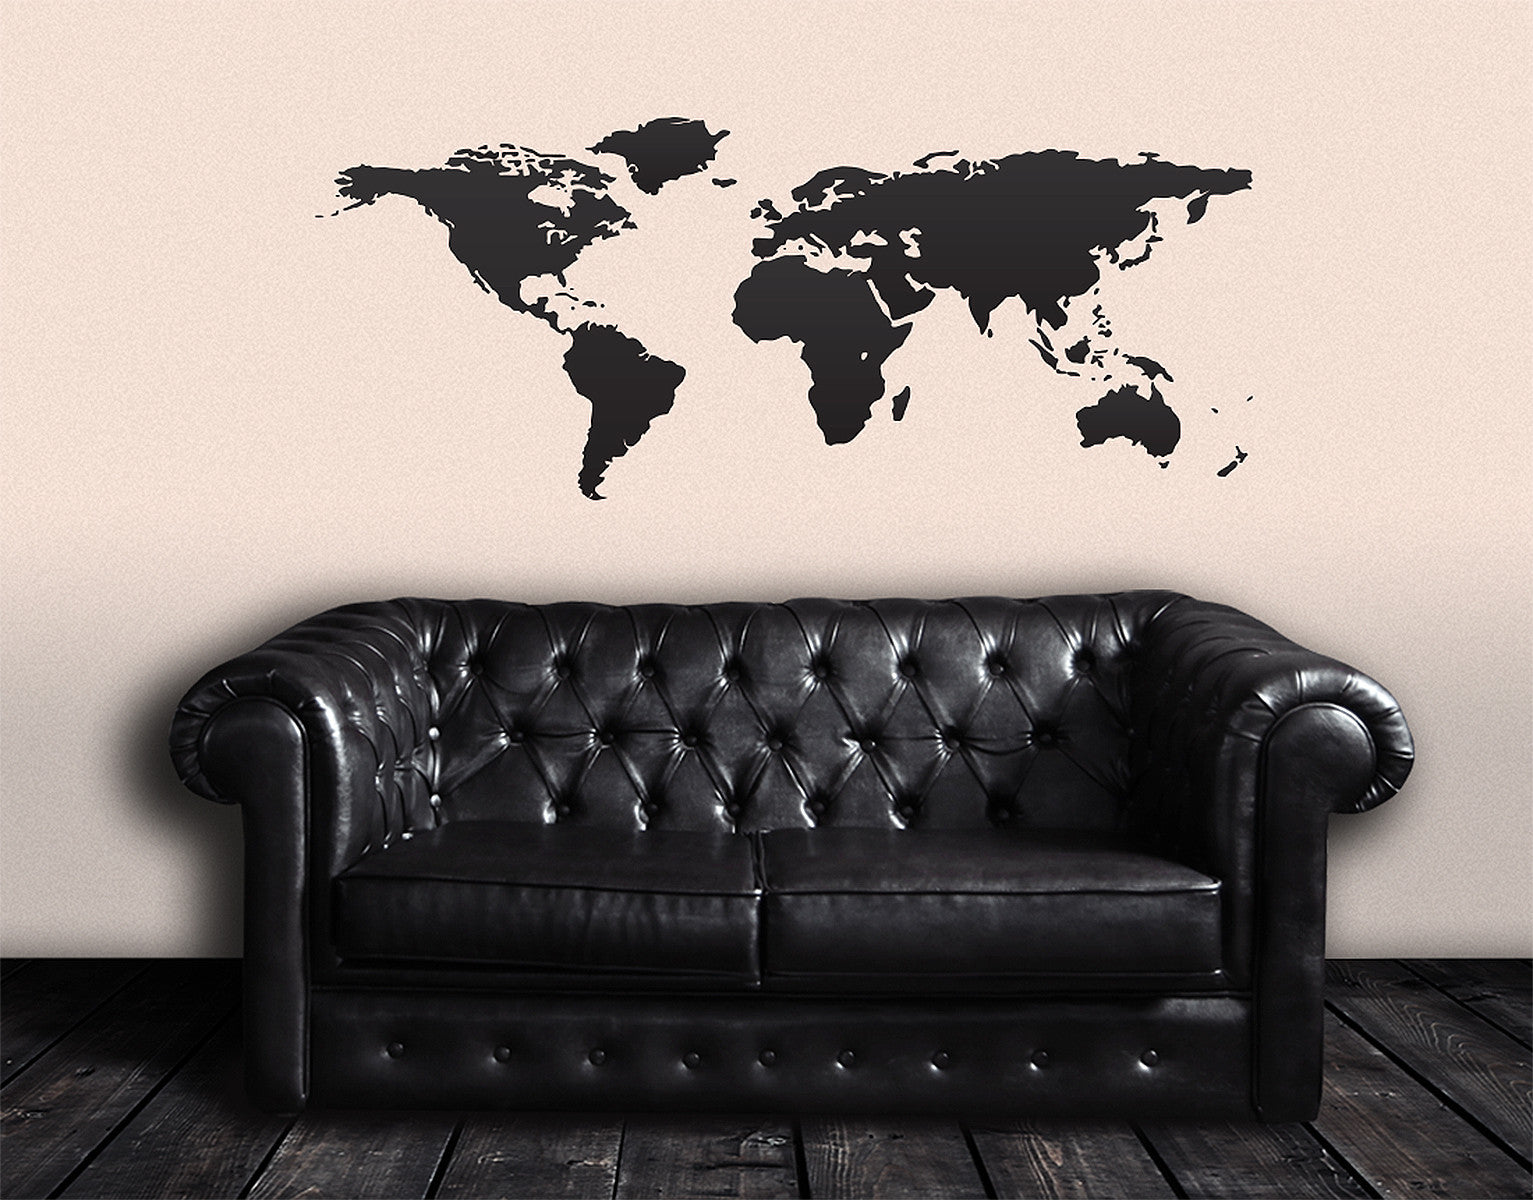 World map wall decal great living room decor 131 gumiabroncs Image collections